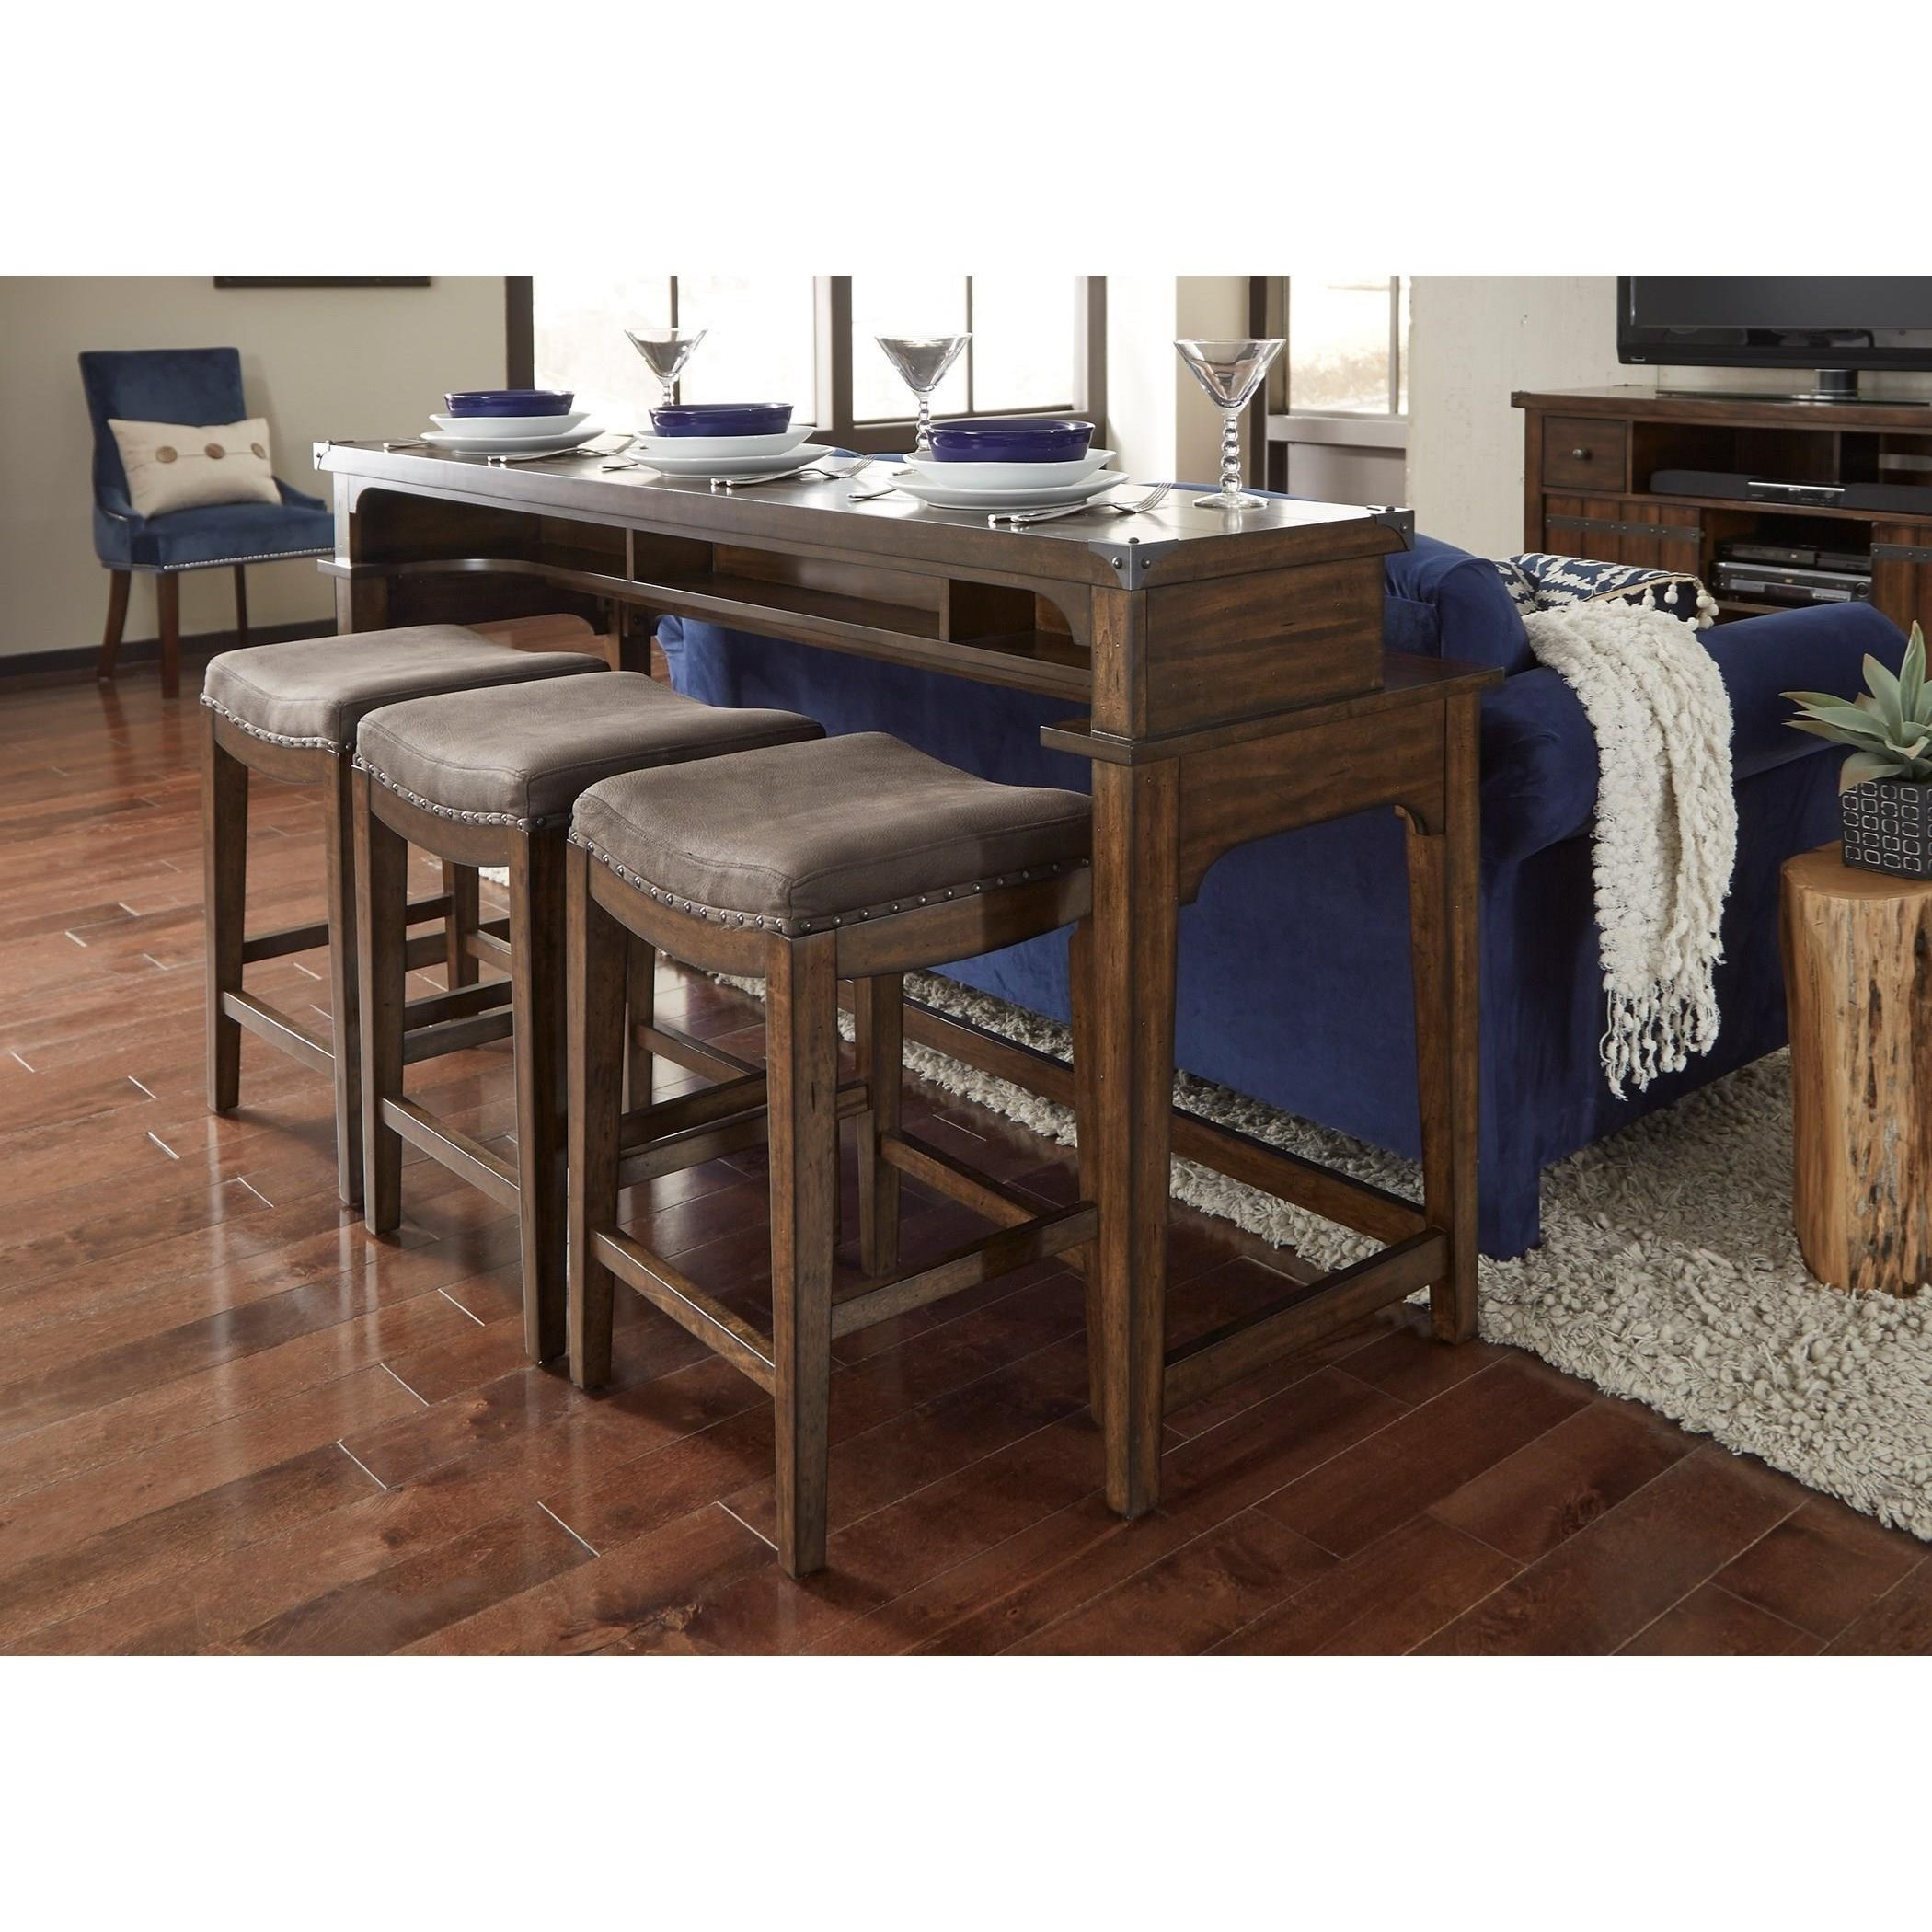 Aspen Skies Counter Height Sofa Table and Stool Set by Liberty Furniture at Standard Furniture